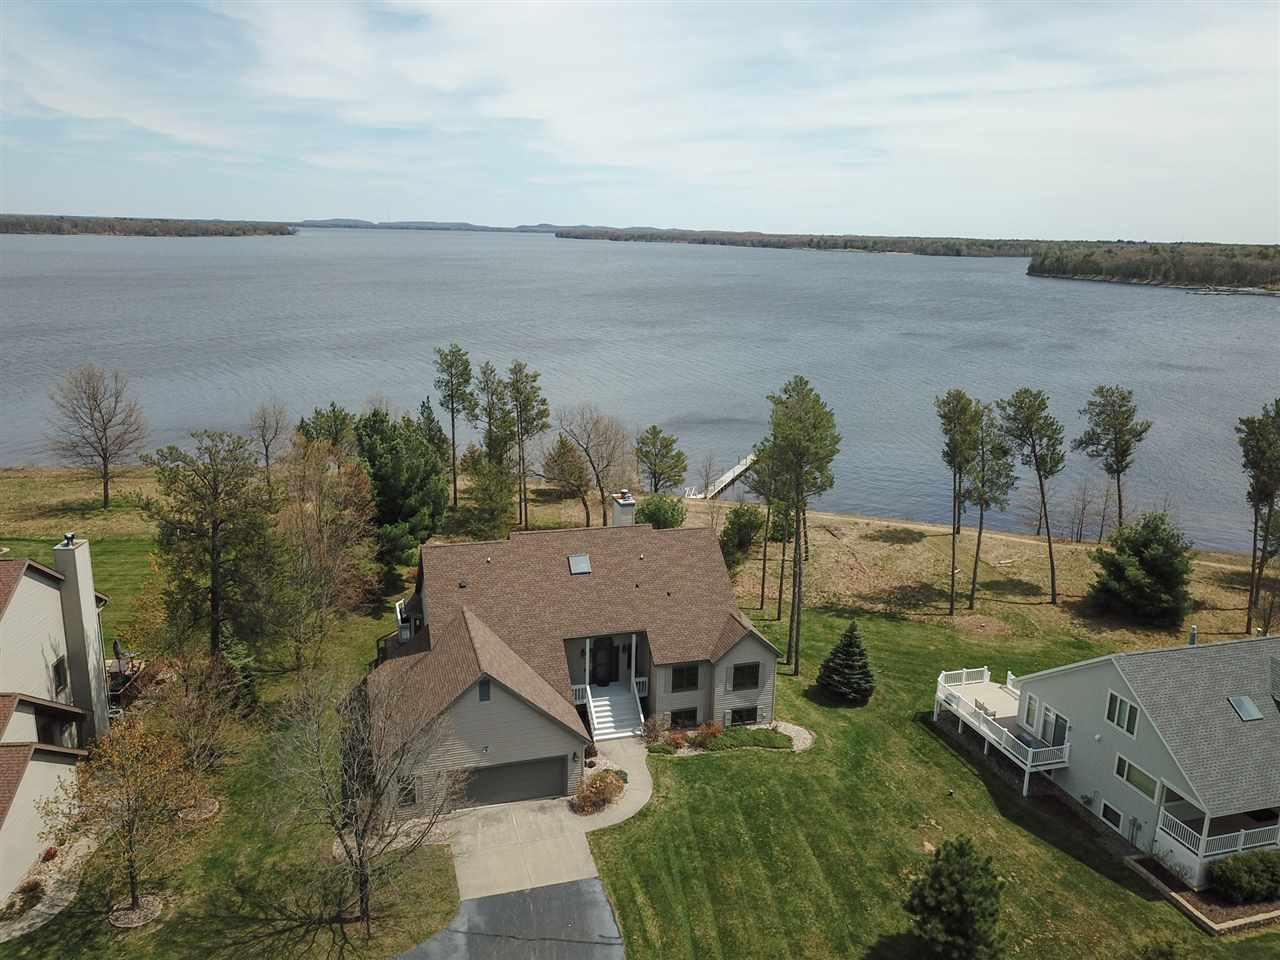 Castle Rock Lake. Enjoy Beautiful Views from the Shores of Sugar Sand Beaches of O'Dells Bay, Private Waterfront Community. 4 bed 3 bath home offers tons of rm for entertaining w/huge family room with wood stove to take the chill out on those cold nights. Stone fireplace to the vaulted ceiling in the great room, granite counters in the just updated kitchen & octagon tray ceiling in dining area makes this great room so cozy. Spa like new Mst bath, Mst bed rm w/patio doors to the deck & sunken Hot Tub.  Large garage w/extra storage for boats too. Beautiful lake views from the loft.  Sunrise views are stunning!